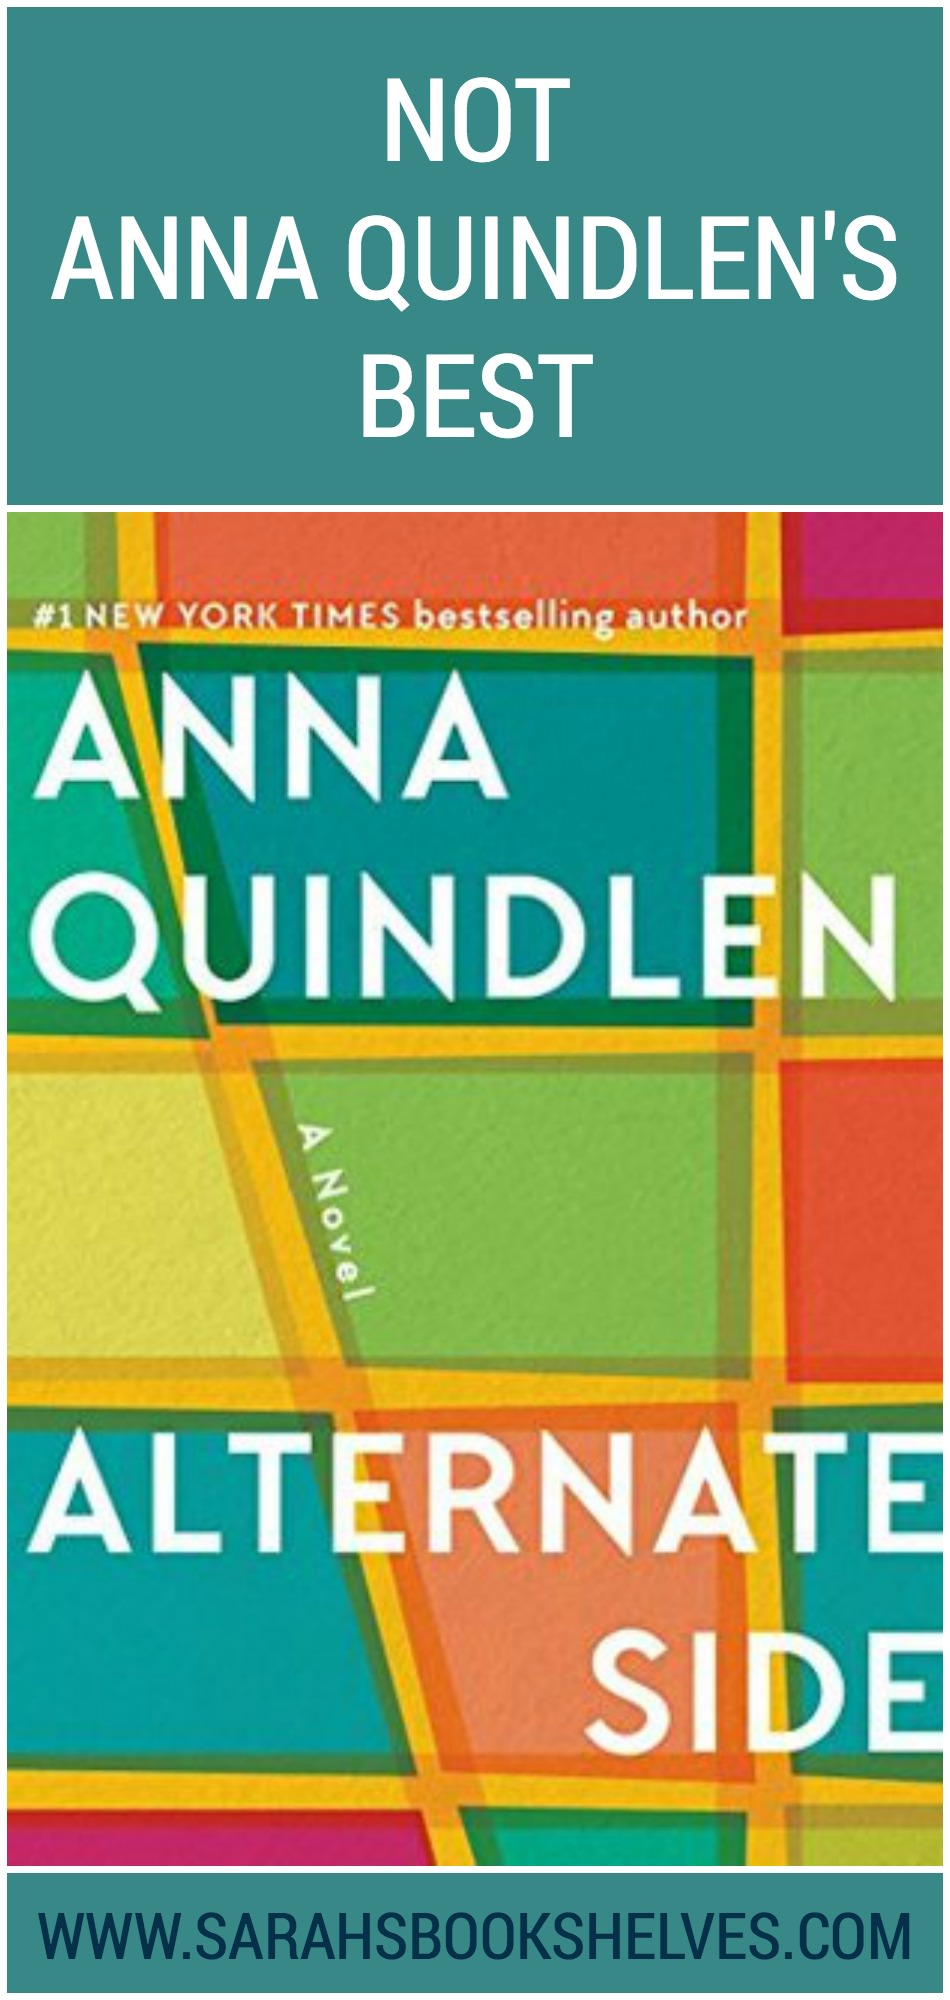 I adore Anna Quindlen (both her fiction and nonfiction) and saw instances of her brilliant, trademark writing in Alternate Side, but the plot was a bit boring and I know she can do better. #reading #bookreviews #book #bookish #bookworms #booklovers